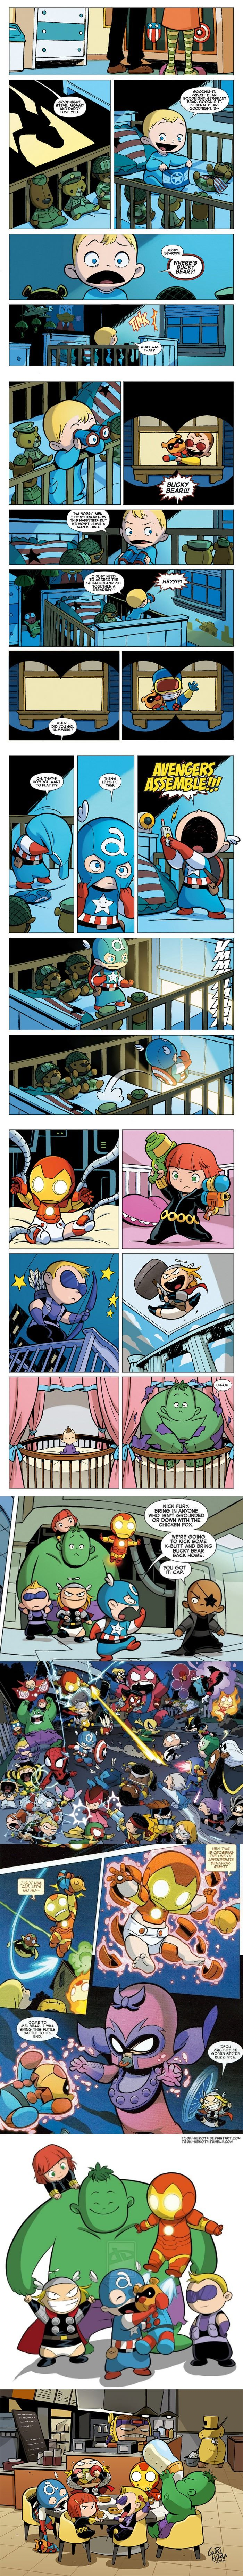 Baby avengers <--- Gotta do some research. I've seen this art before, and I suspect this is stolen.